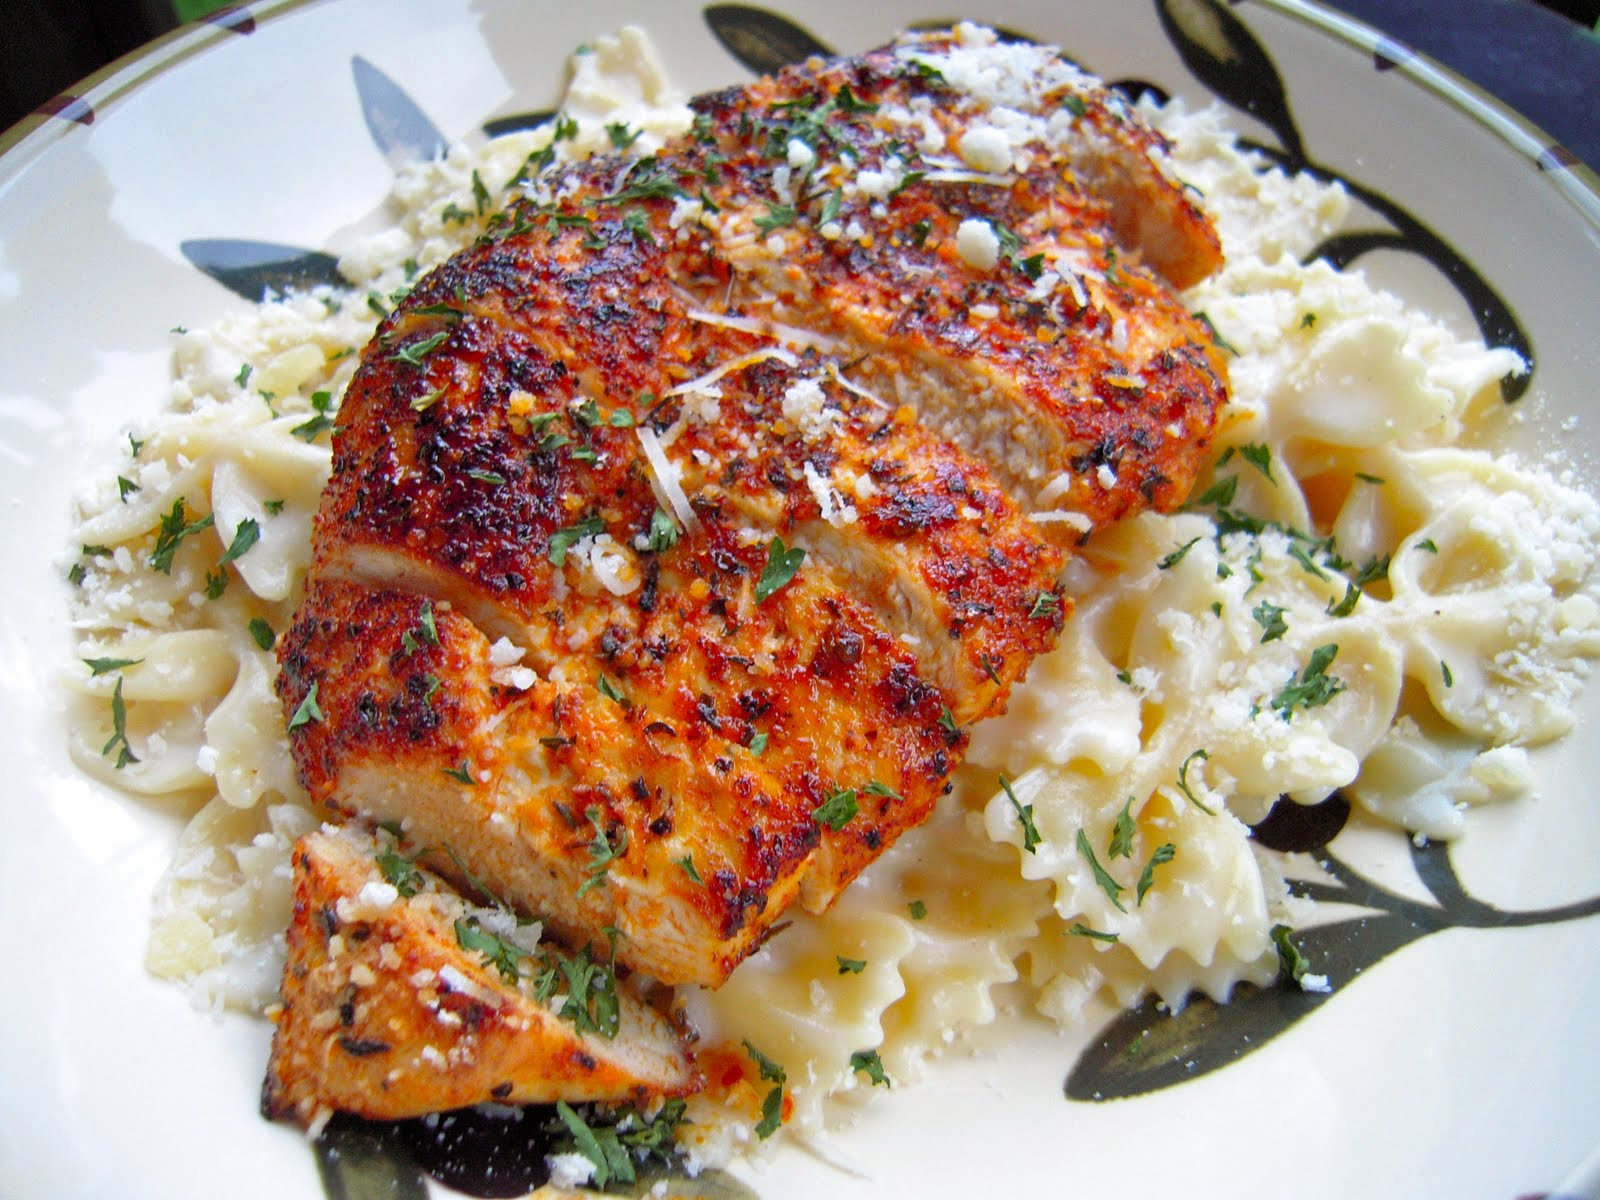 Blackened Chicken with Roasted Garlic Alfredo - so simple and SO delicious!! Chicken rubbed with cajun seasoning and pan seared. Serve over bowtie pasta tossed in roasted garlic and alfredo sauce. Better than any restaurant! Ready in under 20 minutes!!